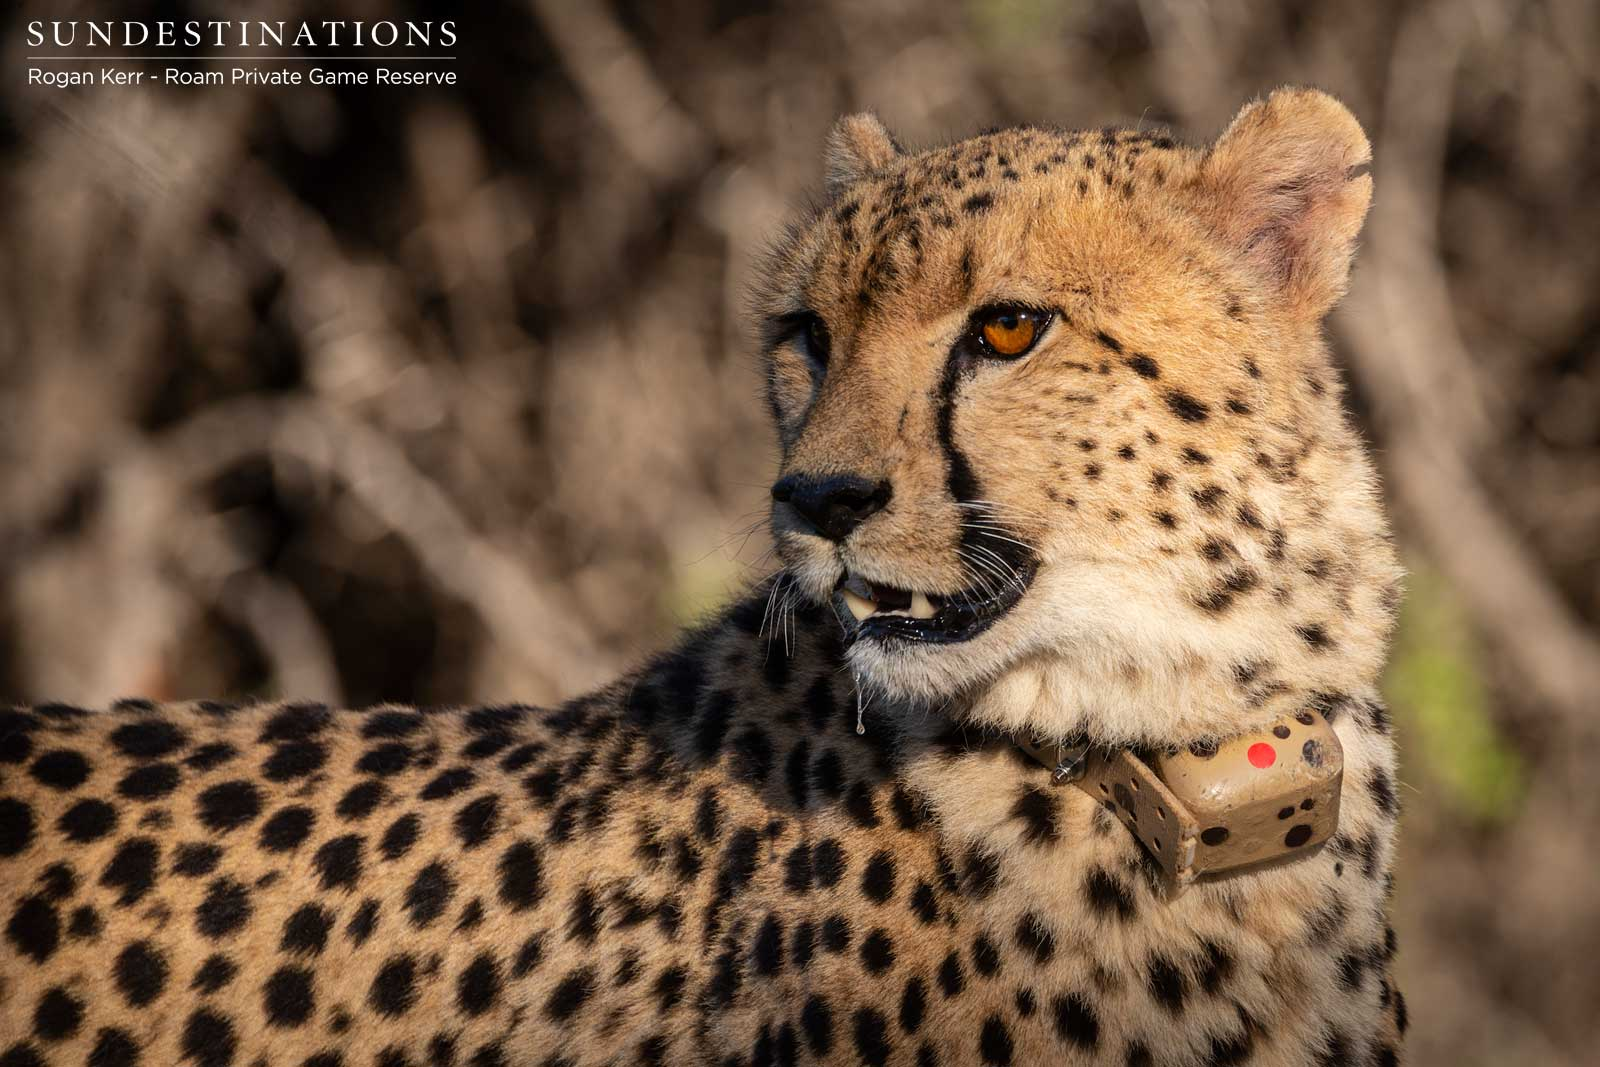 Cheetah Release into Roam Private Game Reserve